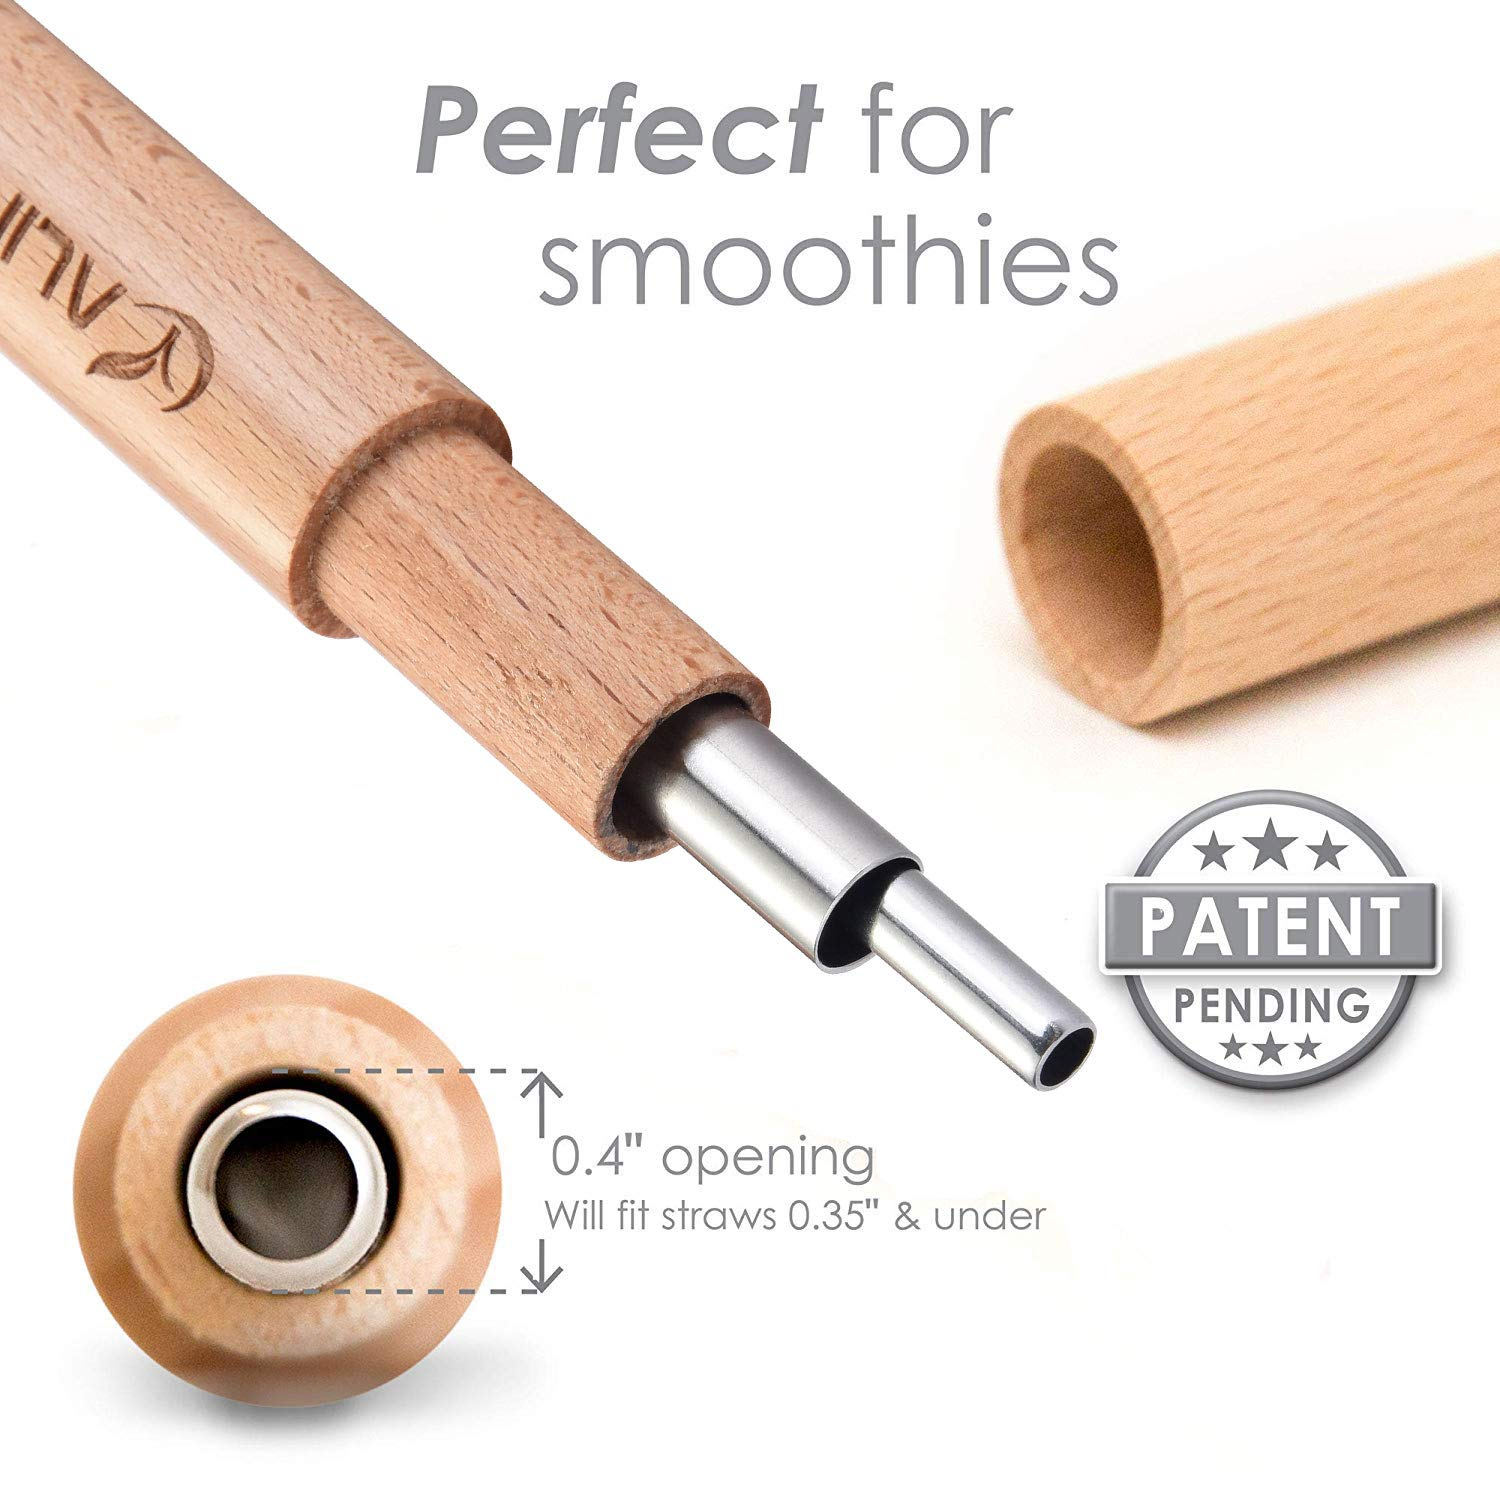 1 Pouch 2 Cleaning Brush ALINK Stainless Steel Reusable Straw Set: 2 Metal Straws 1 Handcrafted Wooden Case Smoothie Jumbo Straws 9 Inches Long.